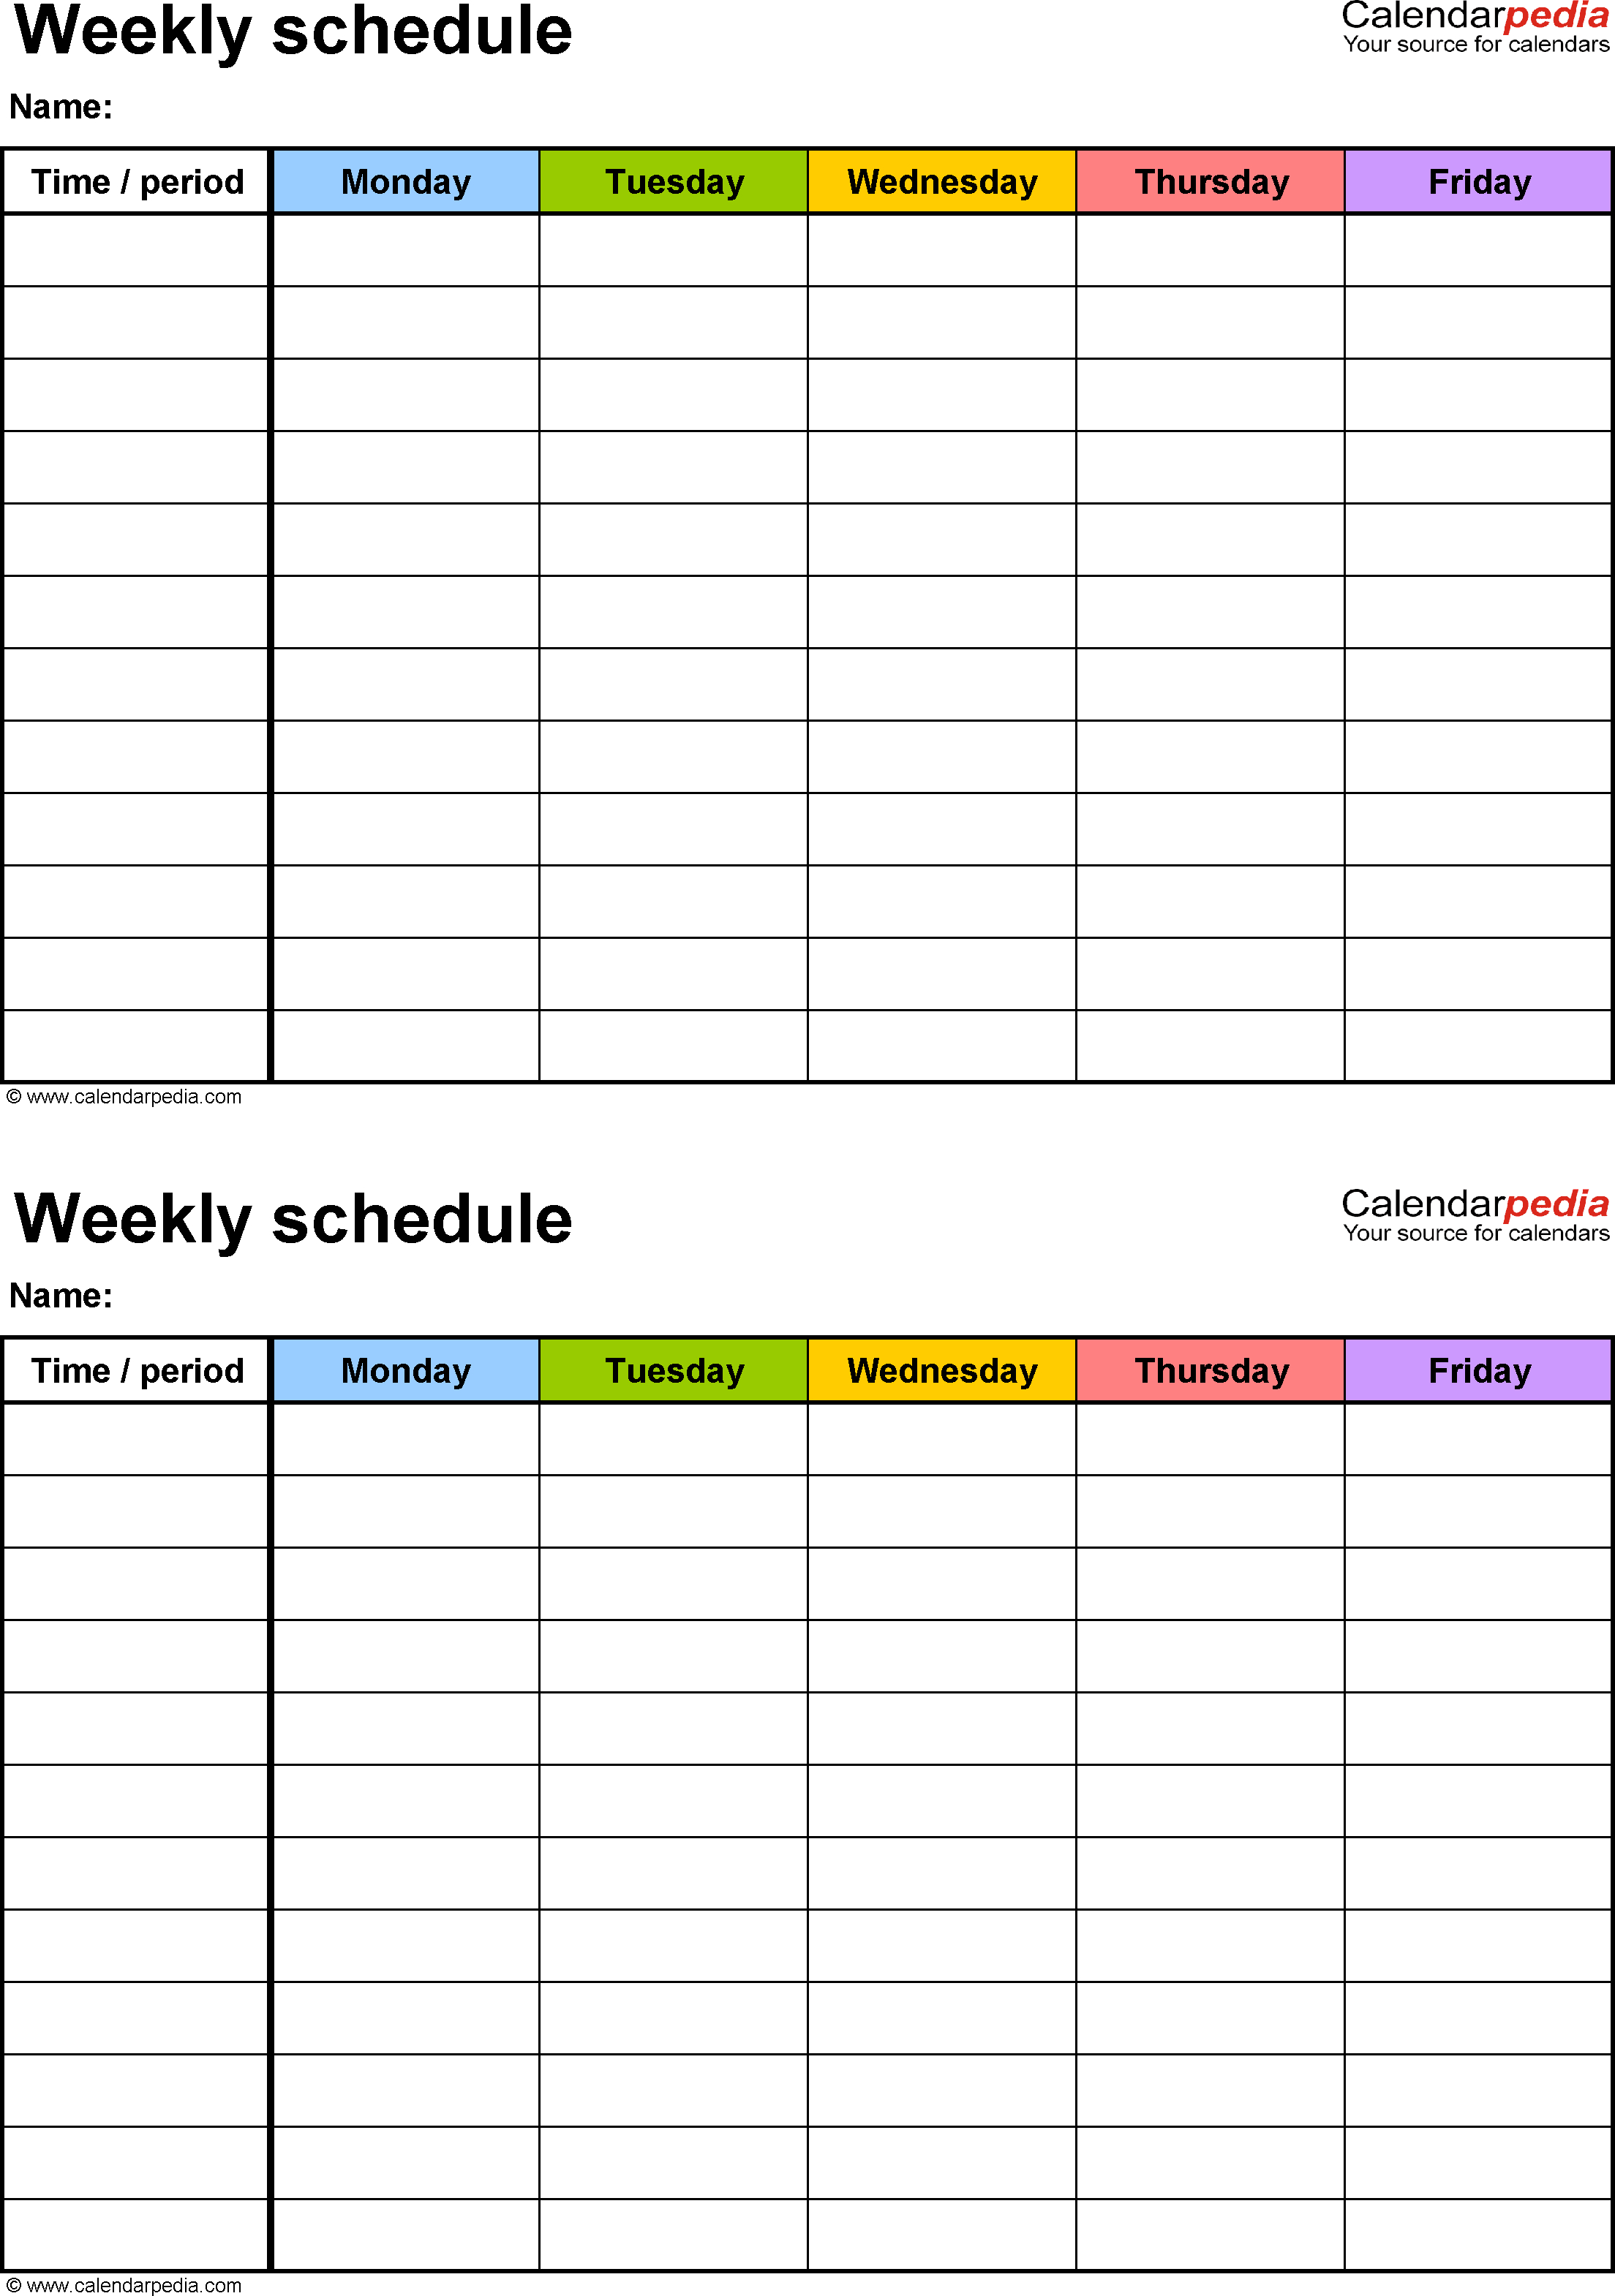 Free Weekly Schedule Templates For Word - 18 Templates with regard to Blank Two Week Calendar Template